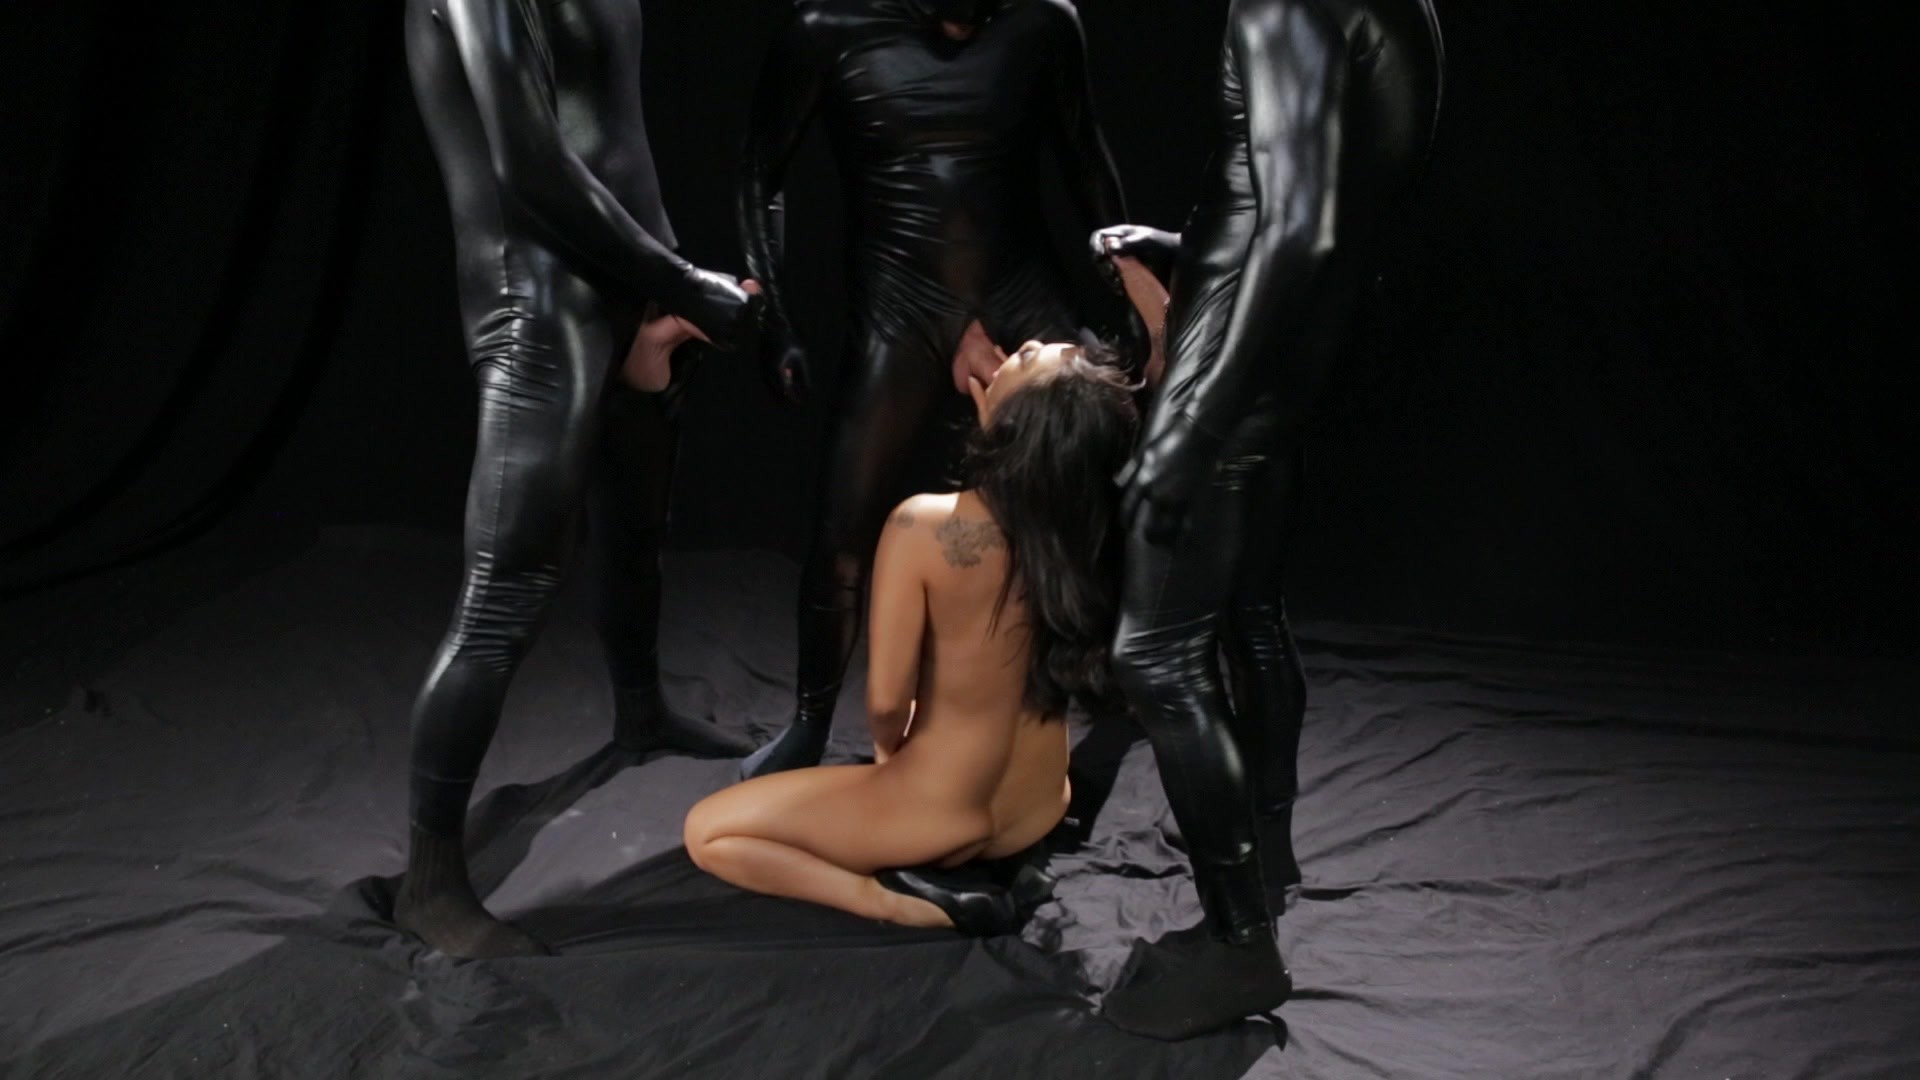 Scene with Asa Akira - image 16 out of 20